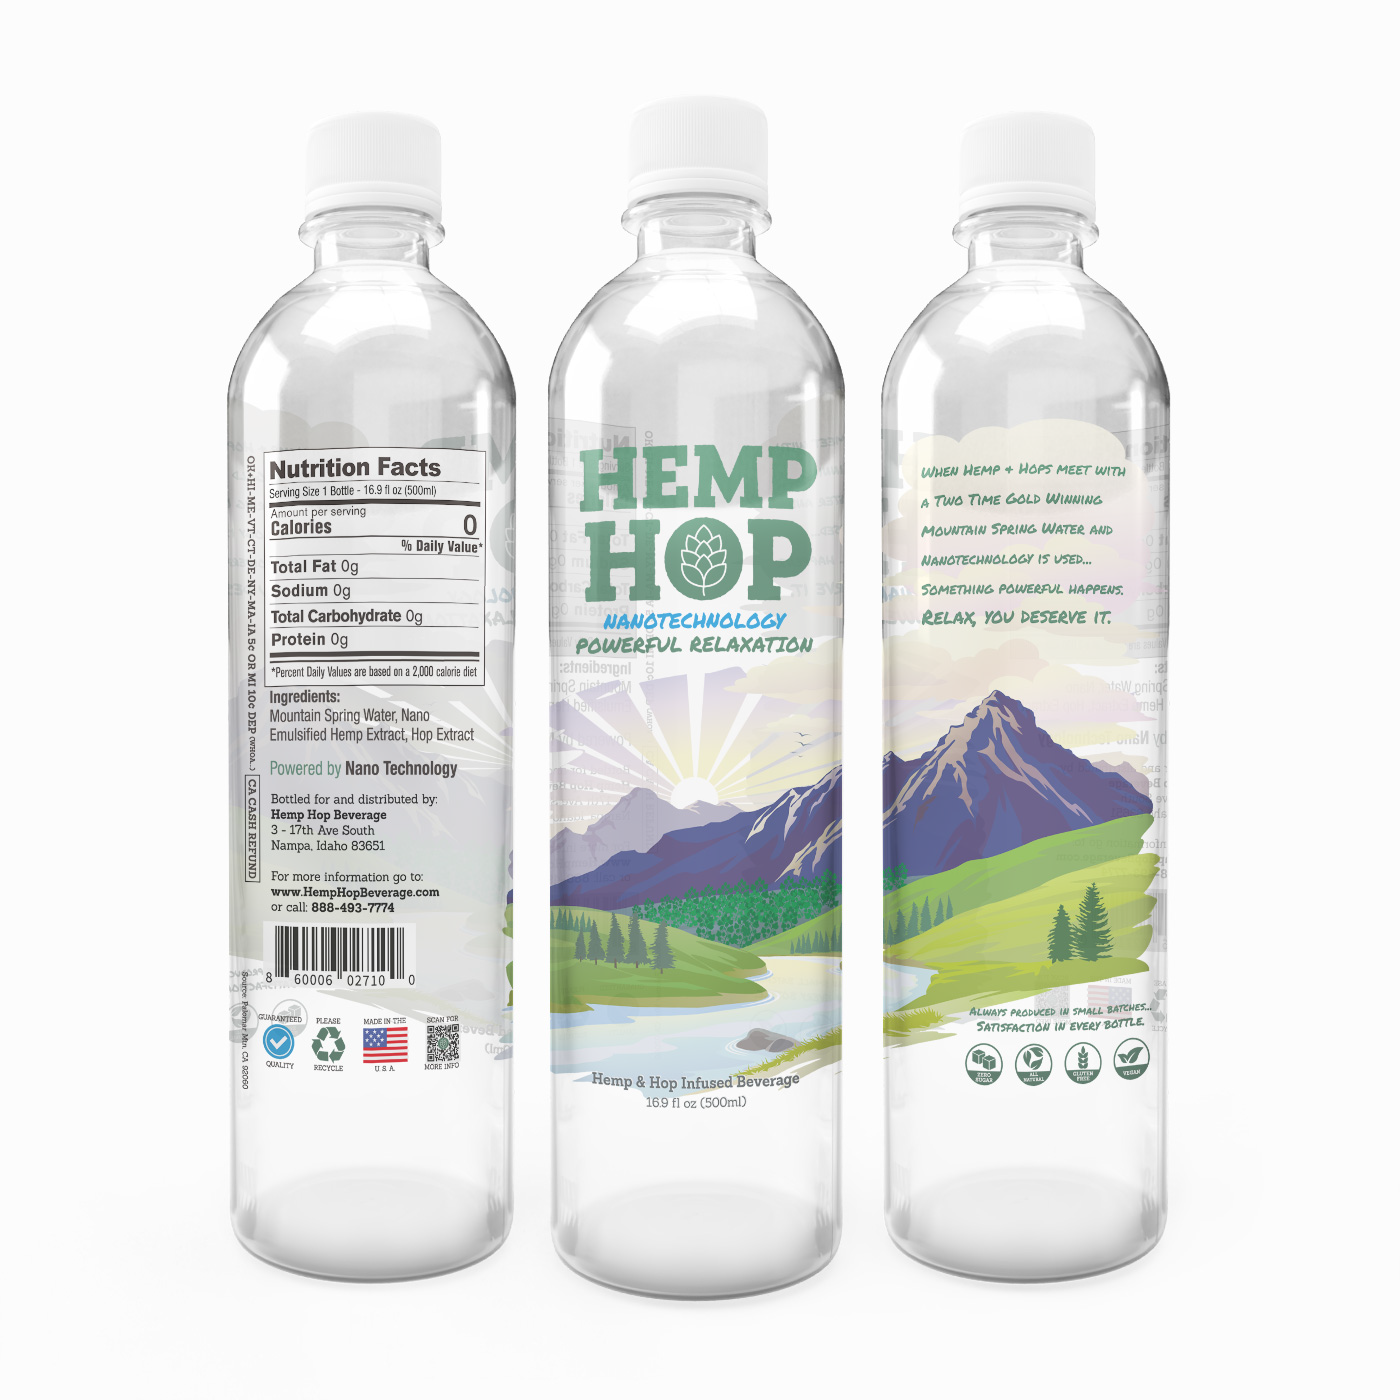 Hemp Hop Beverage Launches New Relaxation Drink, Partners with IBC